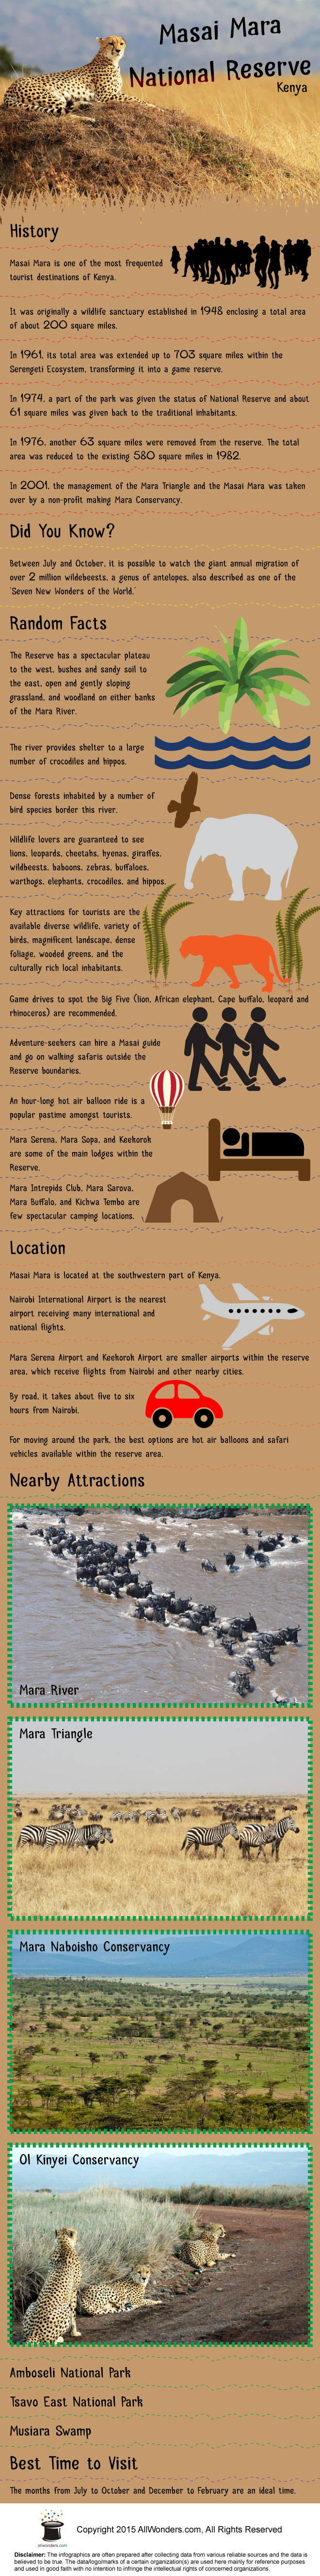 Masai Mara National Reserve Infographic